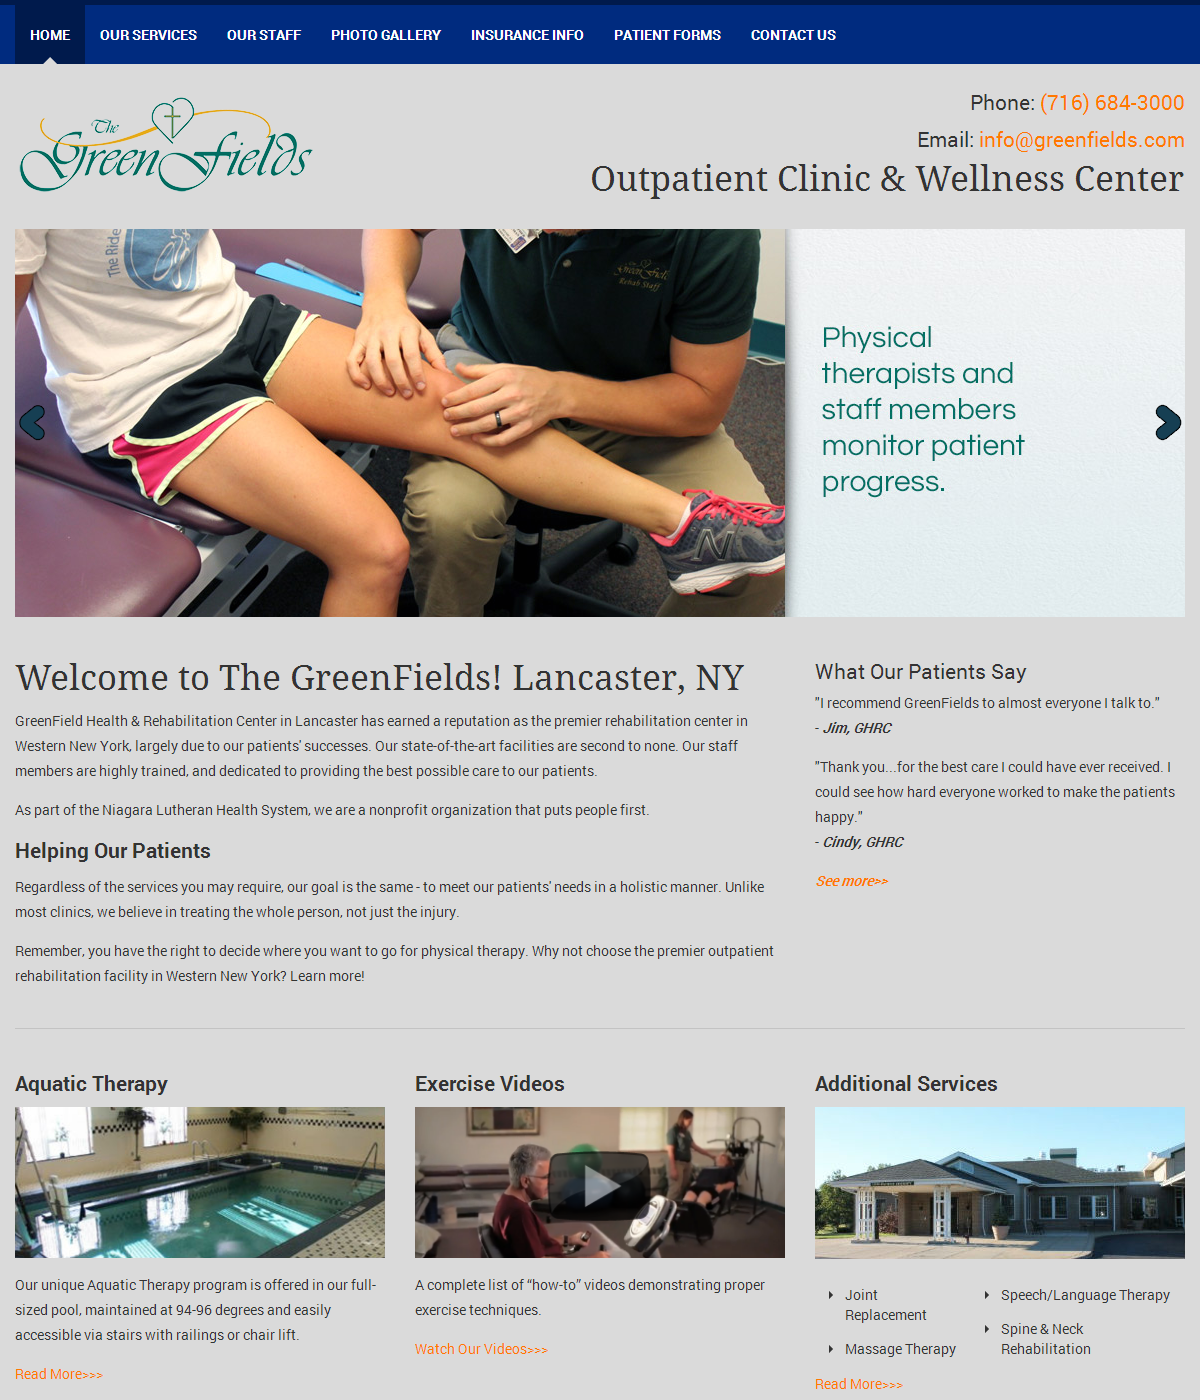 GreenField Health & Rehabilitation Center